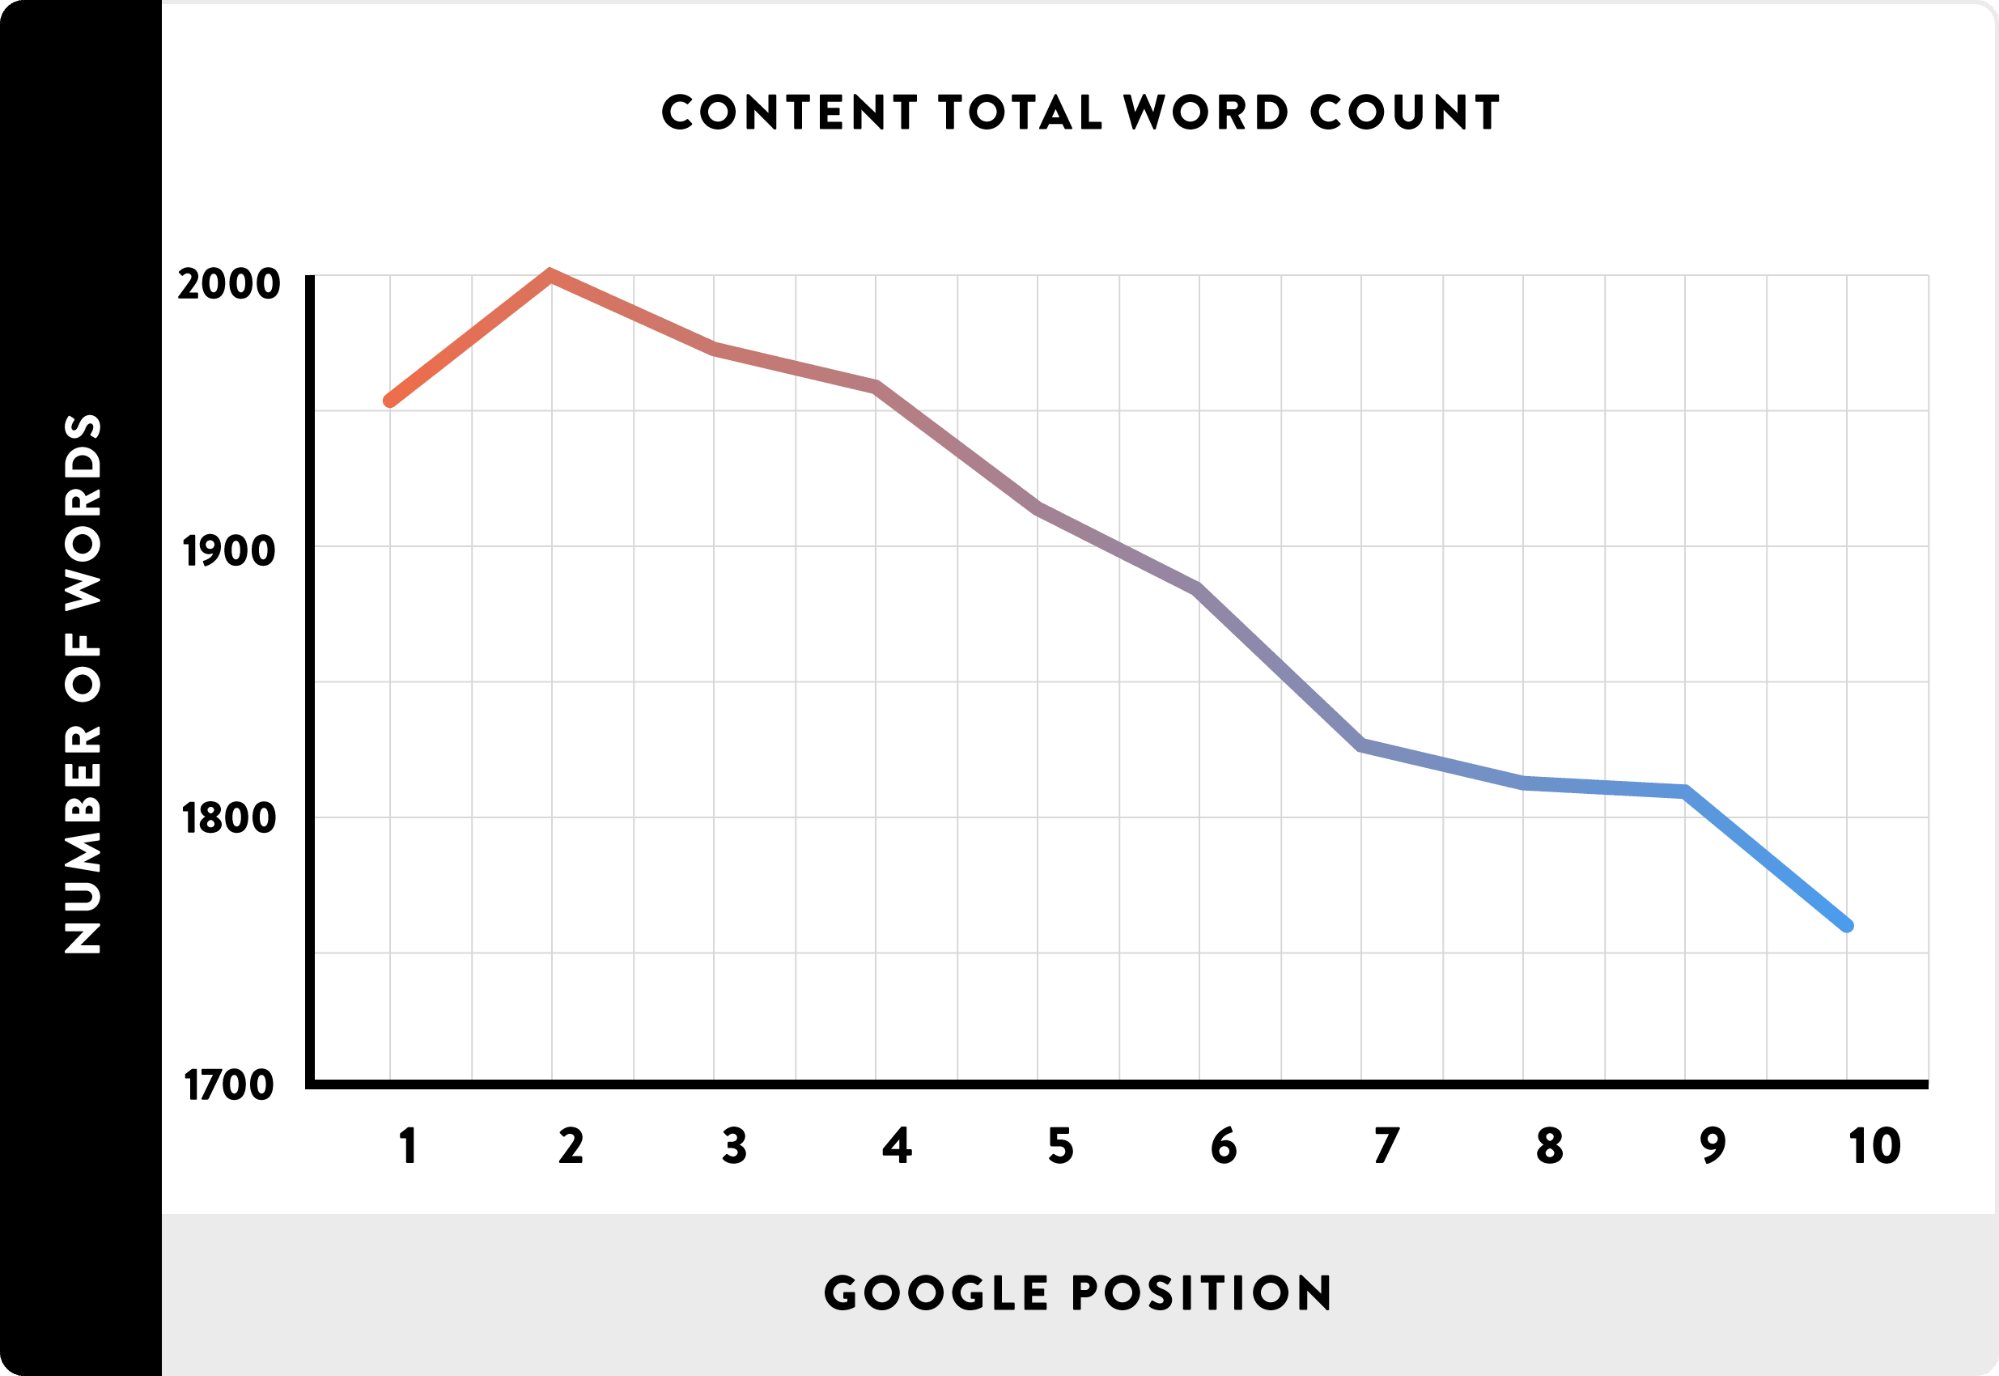 Graph for Google ranking from 1-10 position and the average number of words per each ranking.